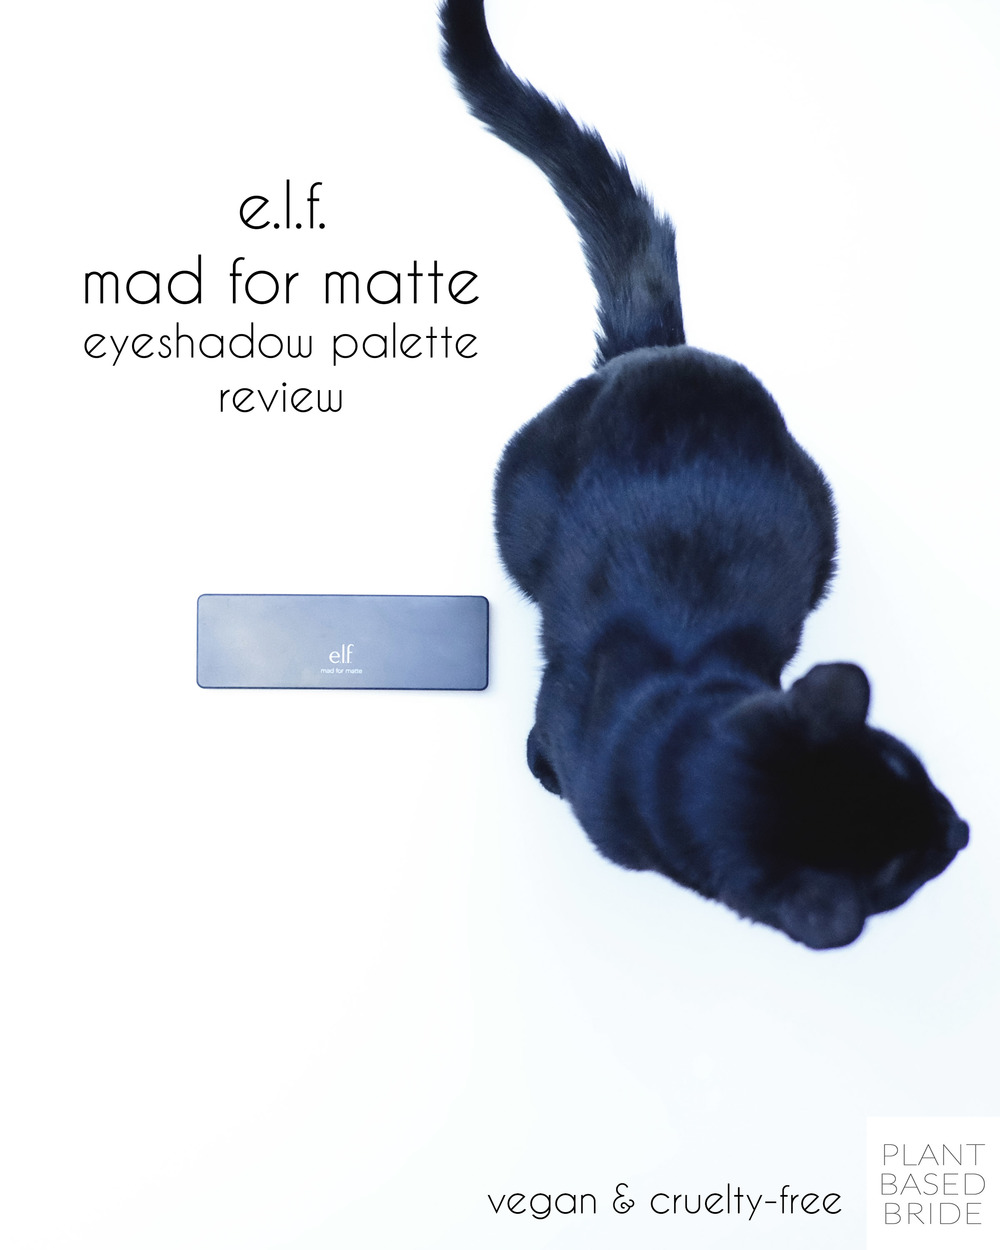 e.l.f. mad for matte palette review // vegan & cruelty-free // plant based bride